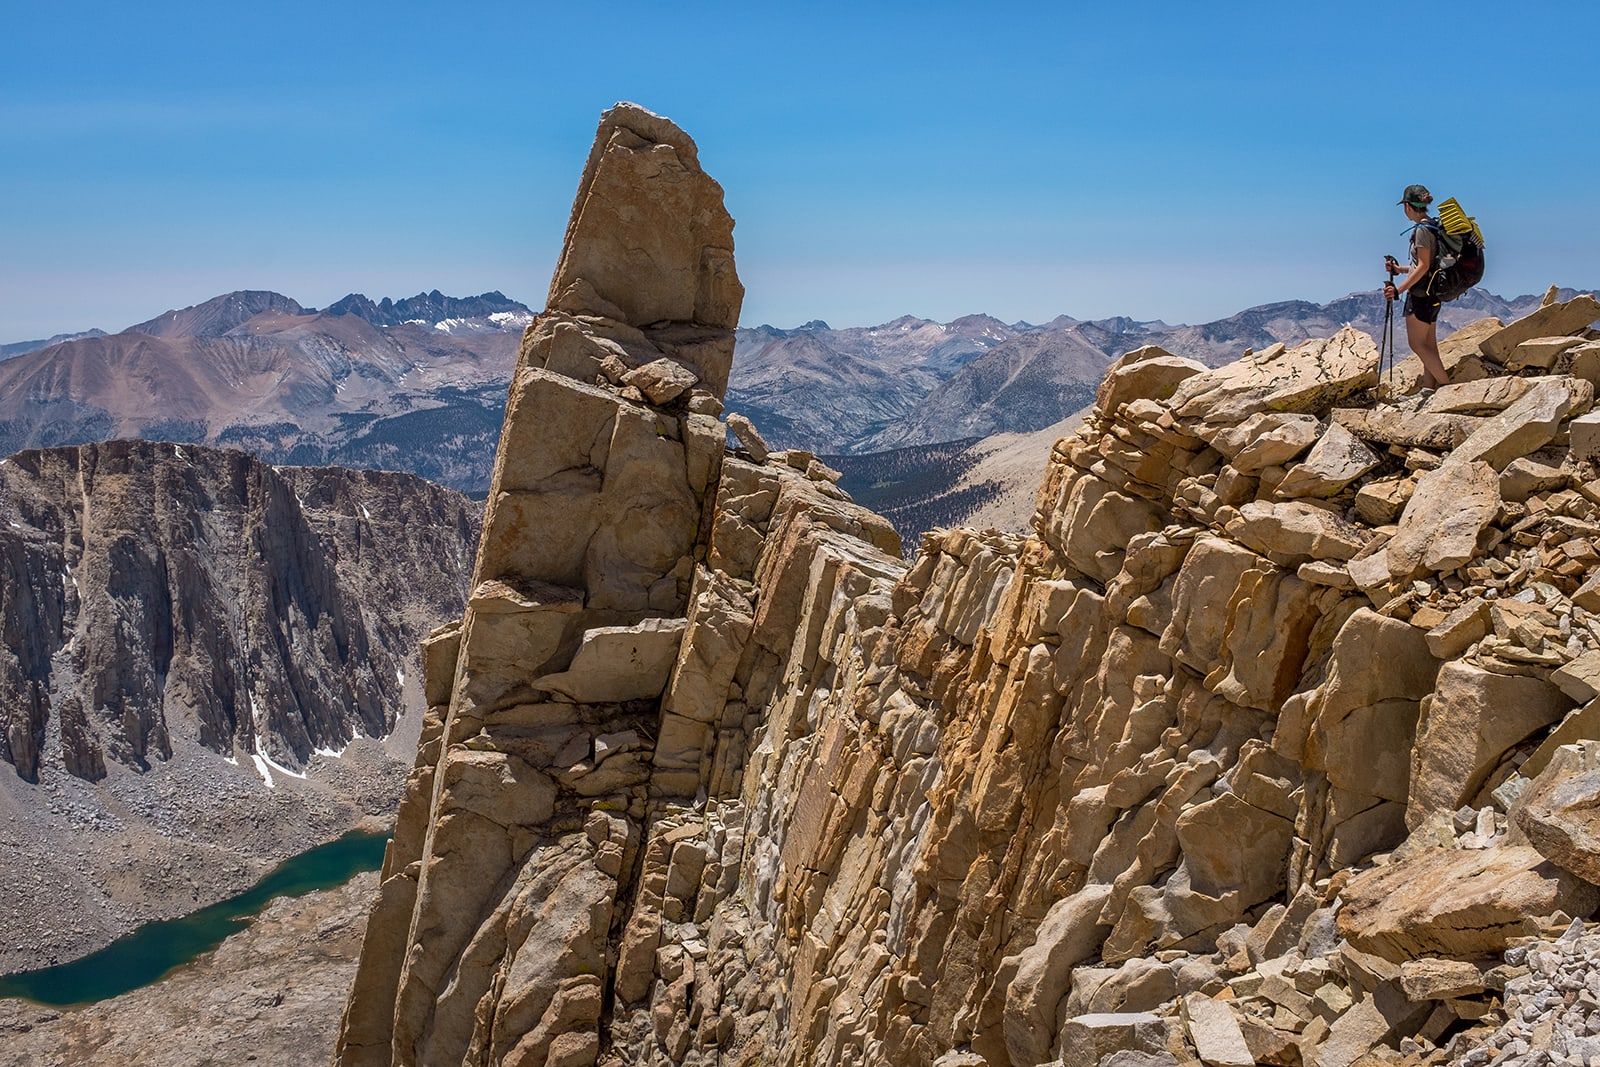 Taking a break during the climb towards the summit of Mt. Whitney.